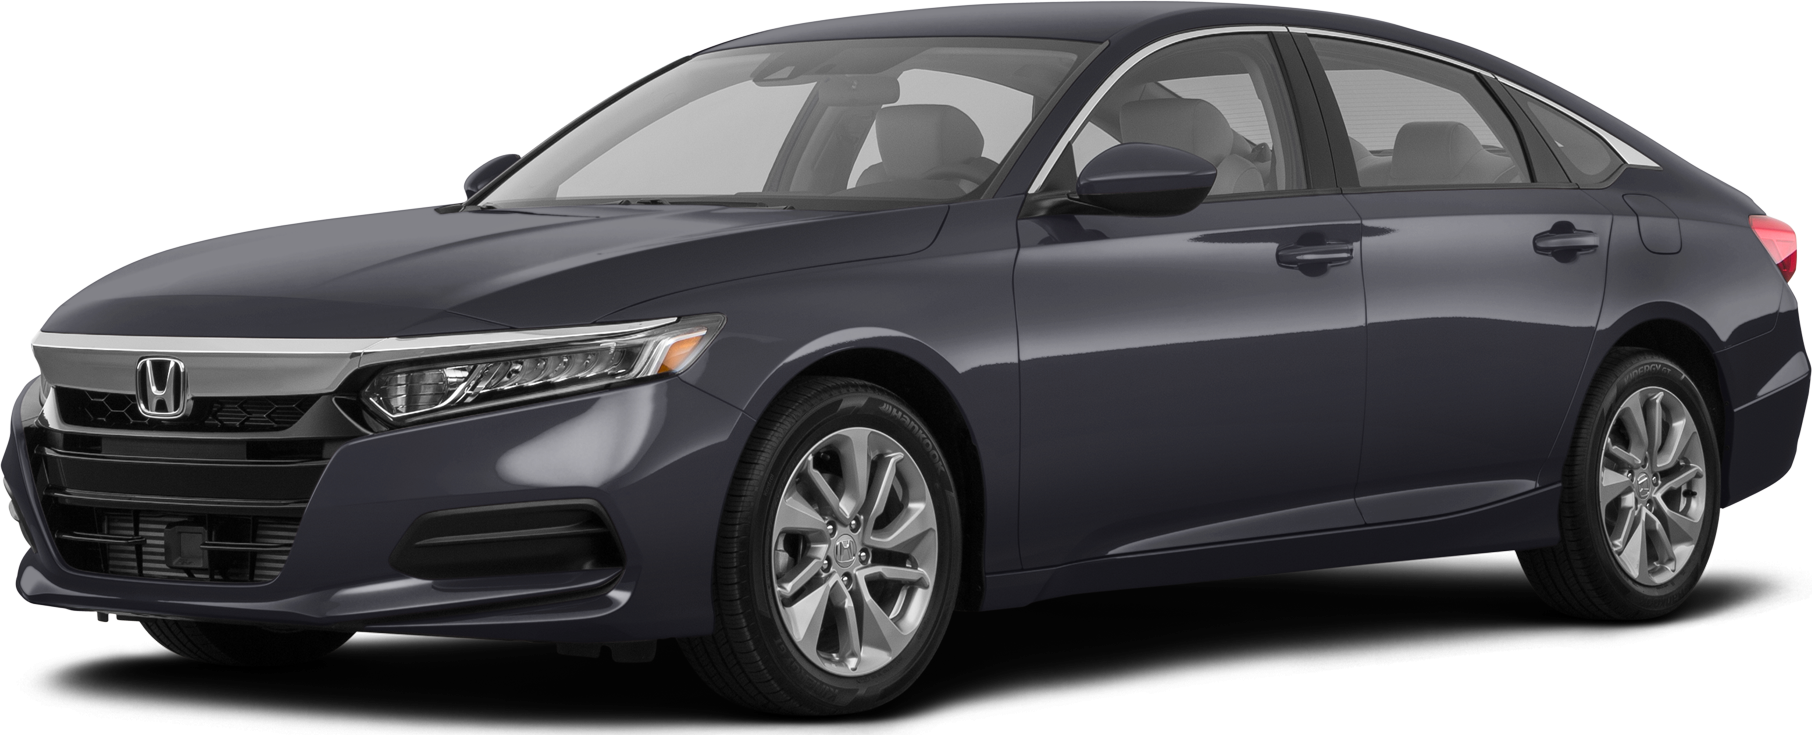 NEW 2019 Accord LX Sedan 1.5 CVT